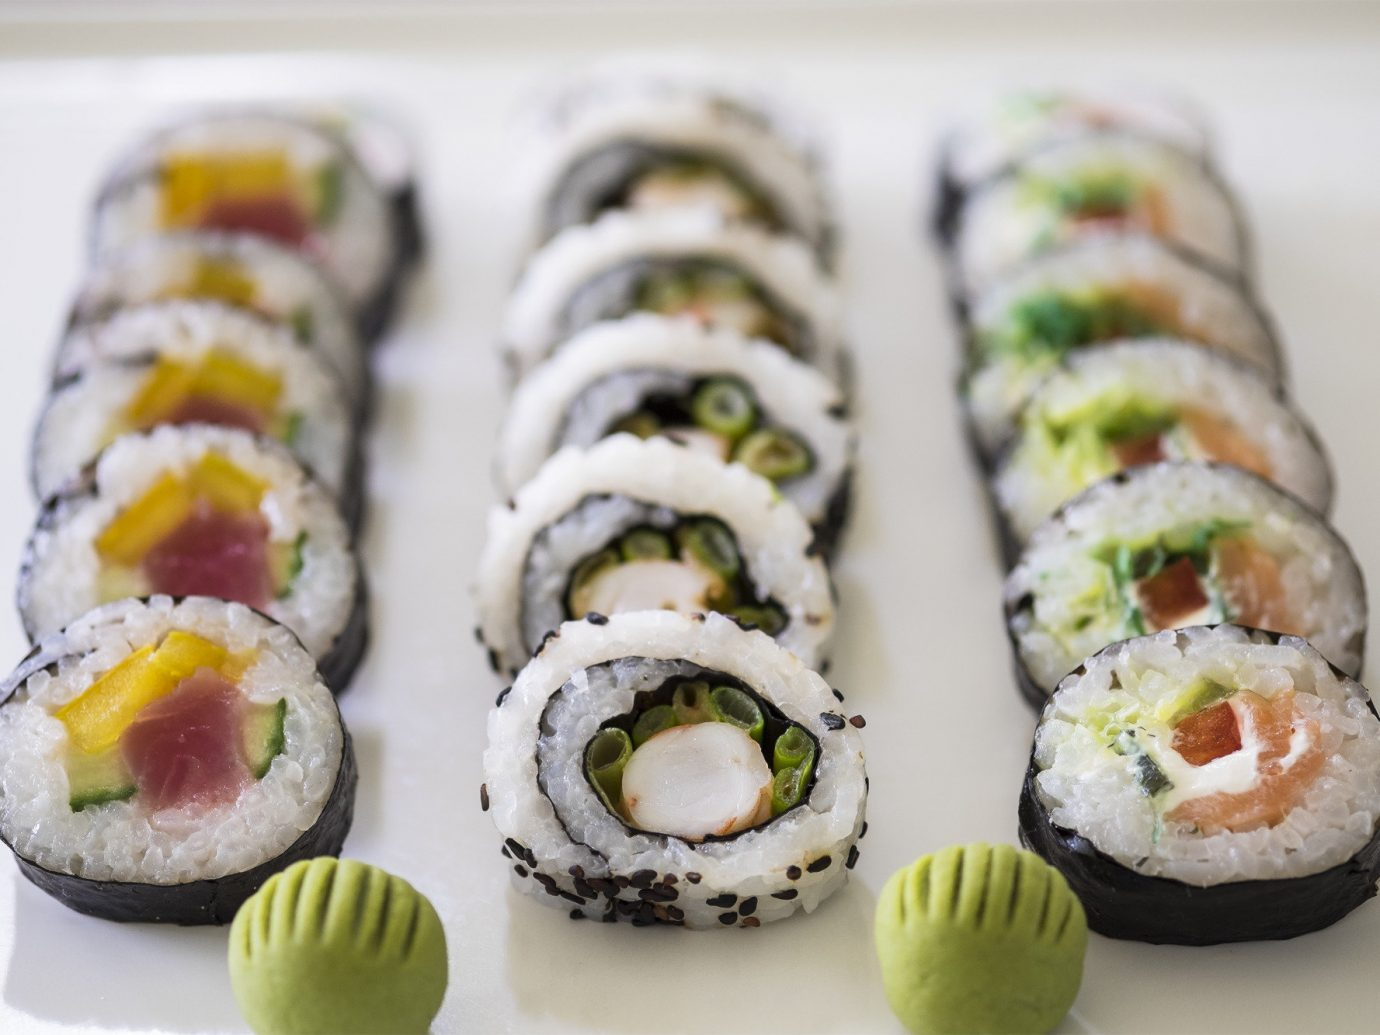 Trip Ideas dish sushi food indoor gimbap cuisine asian food california roll meal hors d oeuvre produce japanese cuisine decorated